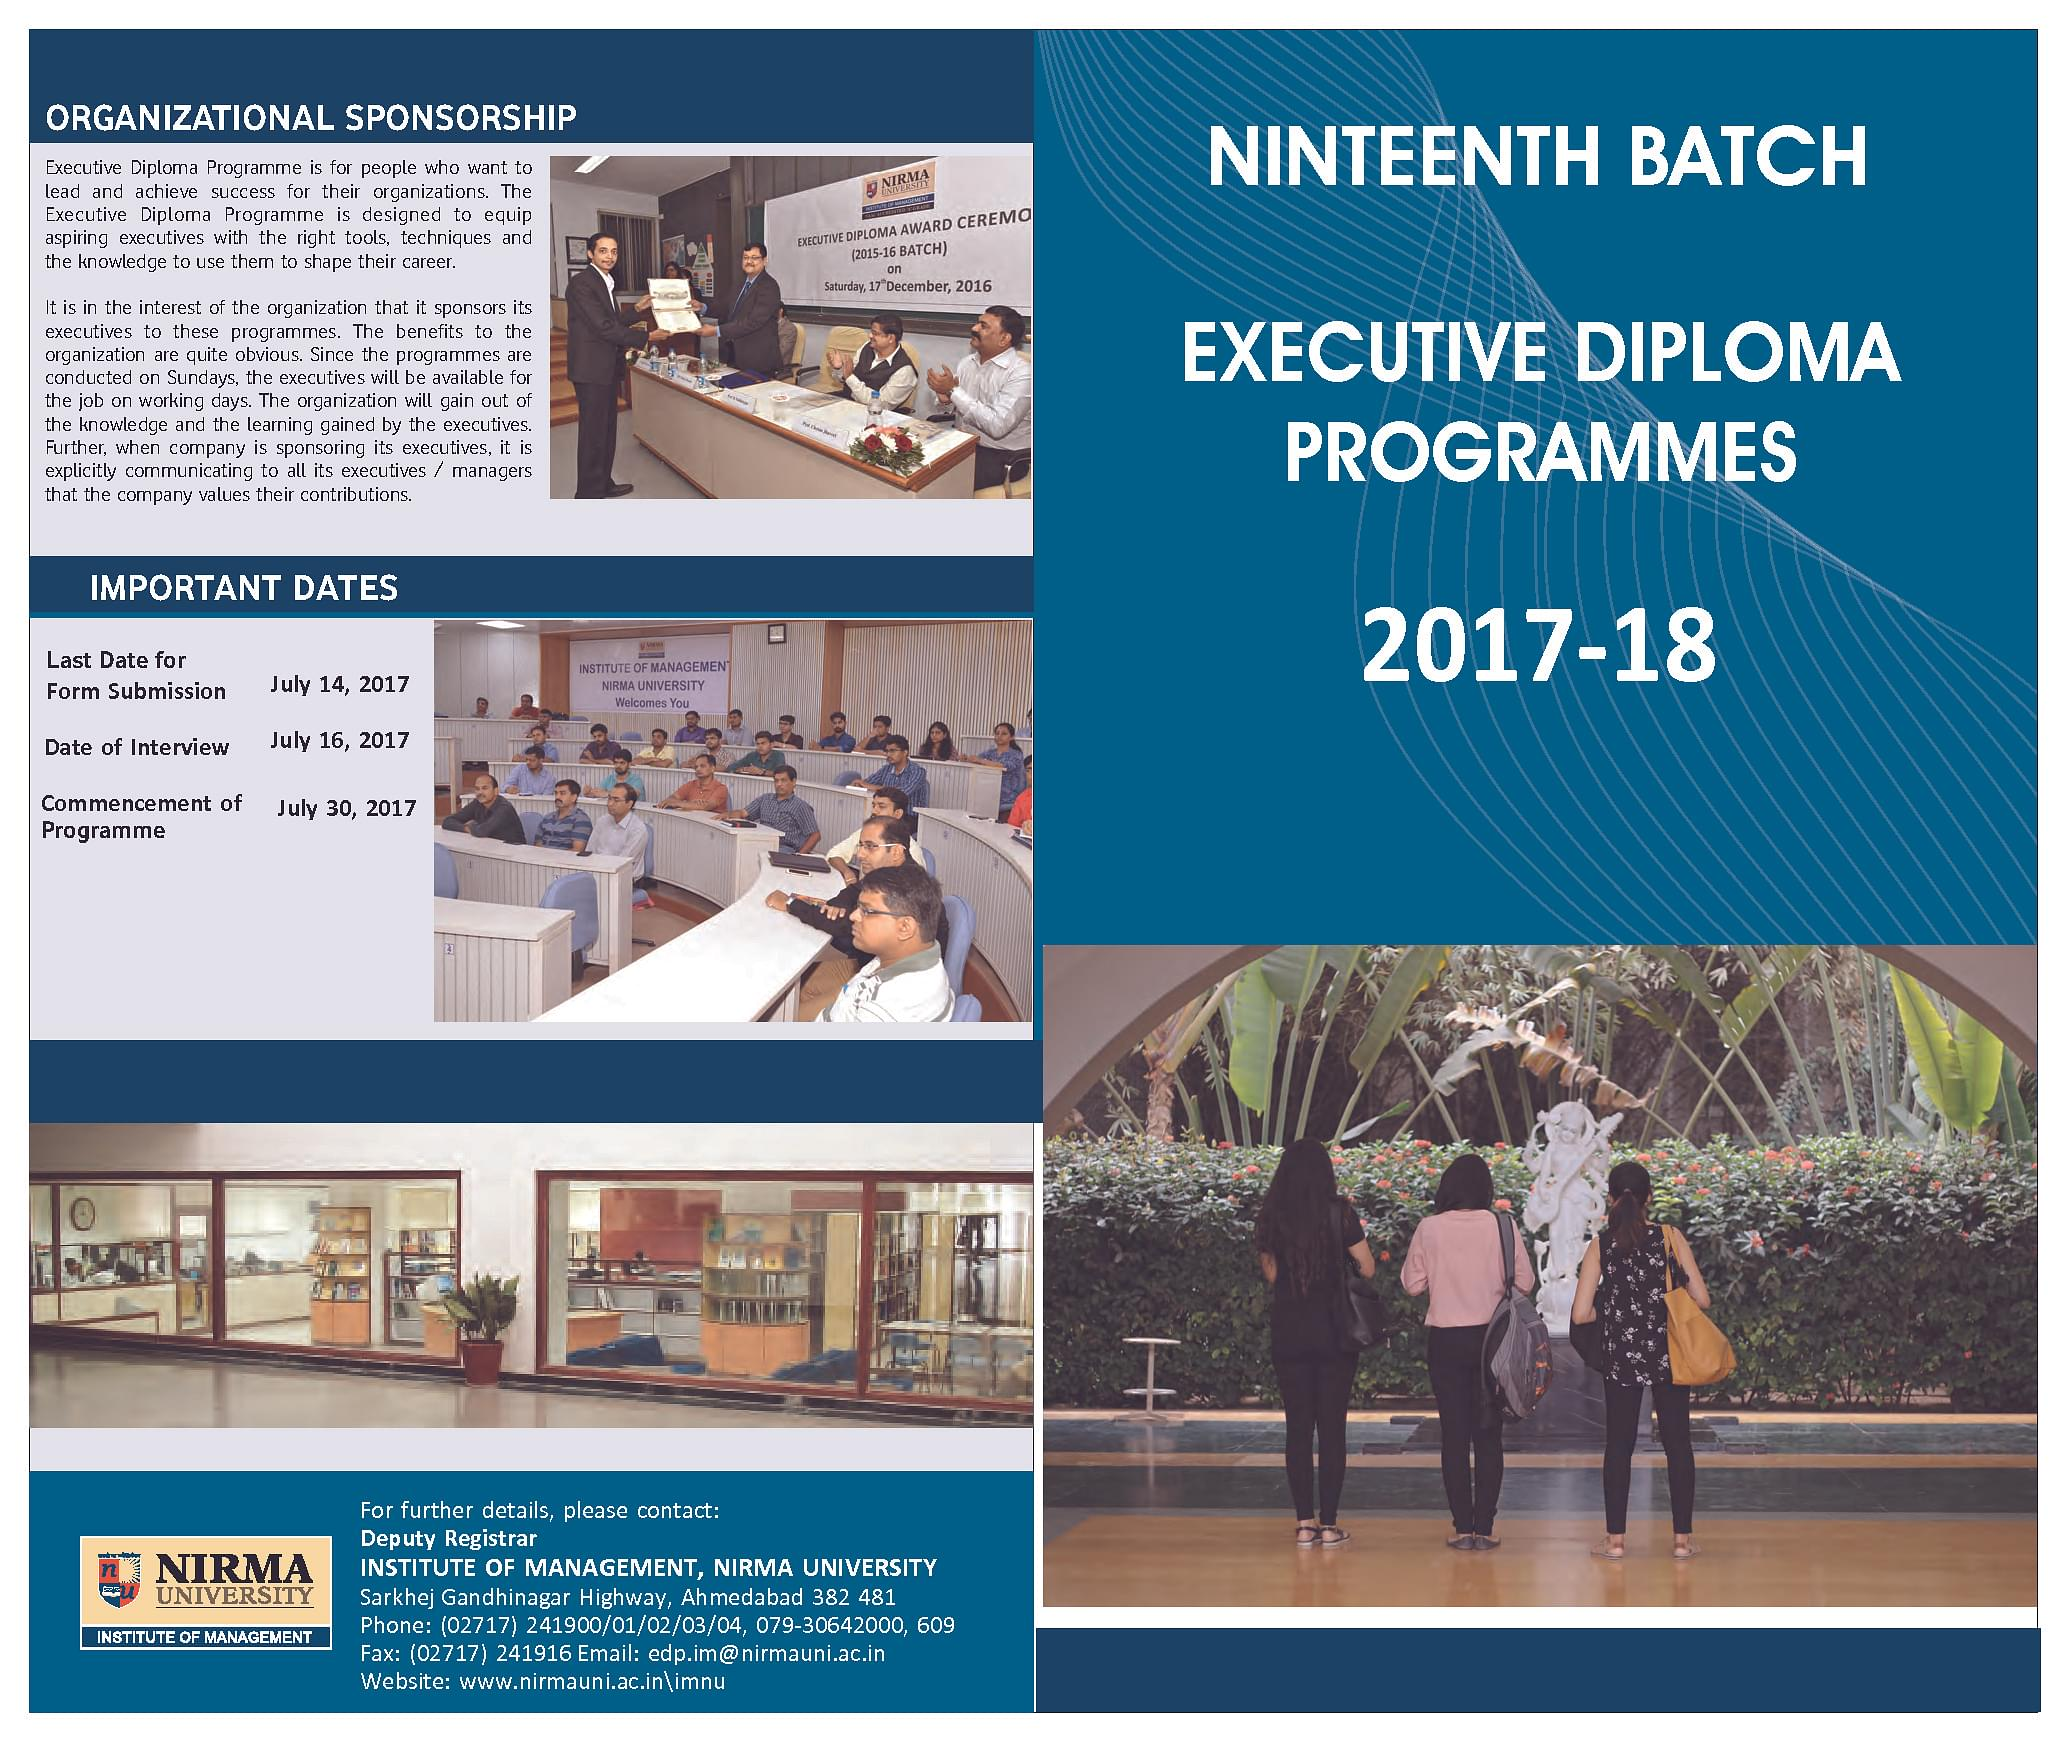 bba nu program structure and Beaconhouse national university (bnu) lahore offered admissions 2018 in various disciplines for bba, mba, bcs, bsc, computer science, architecture, ma, msc, ms, mphil and phd in relevant subjects.